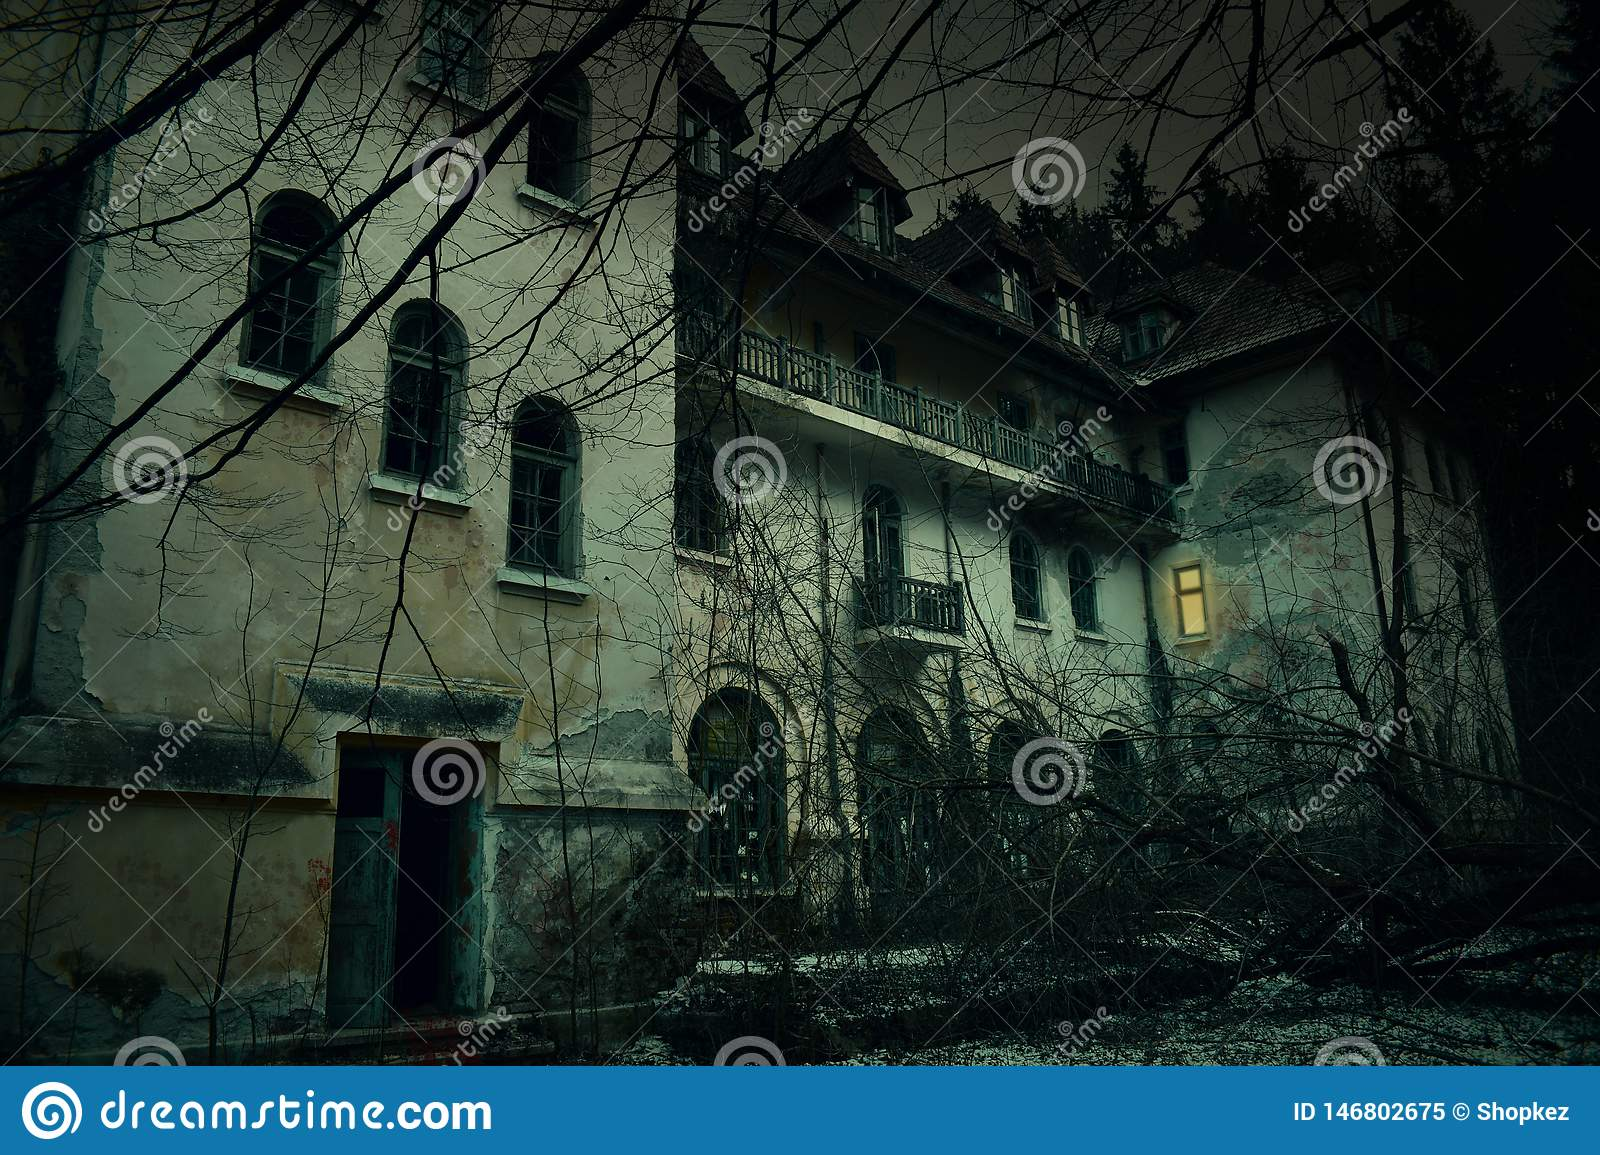 Old Abandoned Mansion In Mystic Spooky Forest The Ancient Haunted House Of Frankenstein With Dark Horror Atmosphere And Creepy Stock Image Image Of Autumn Dark 146802675